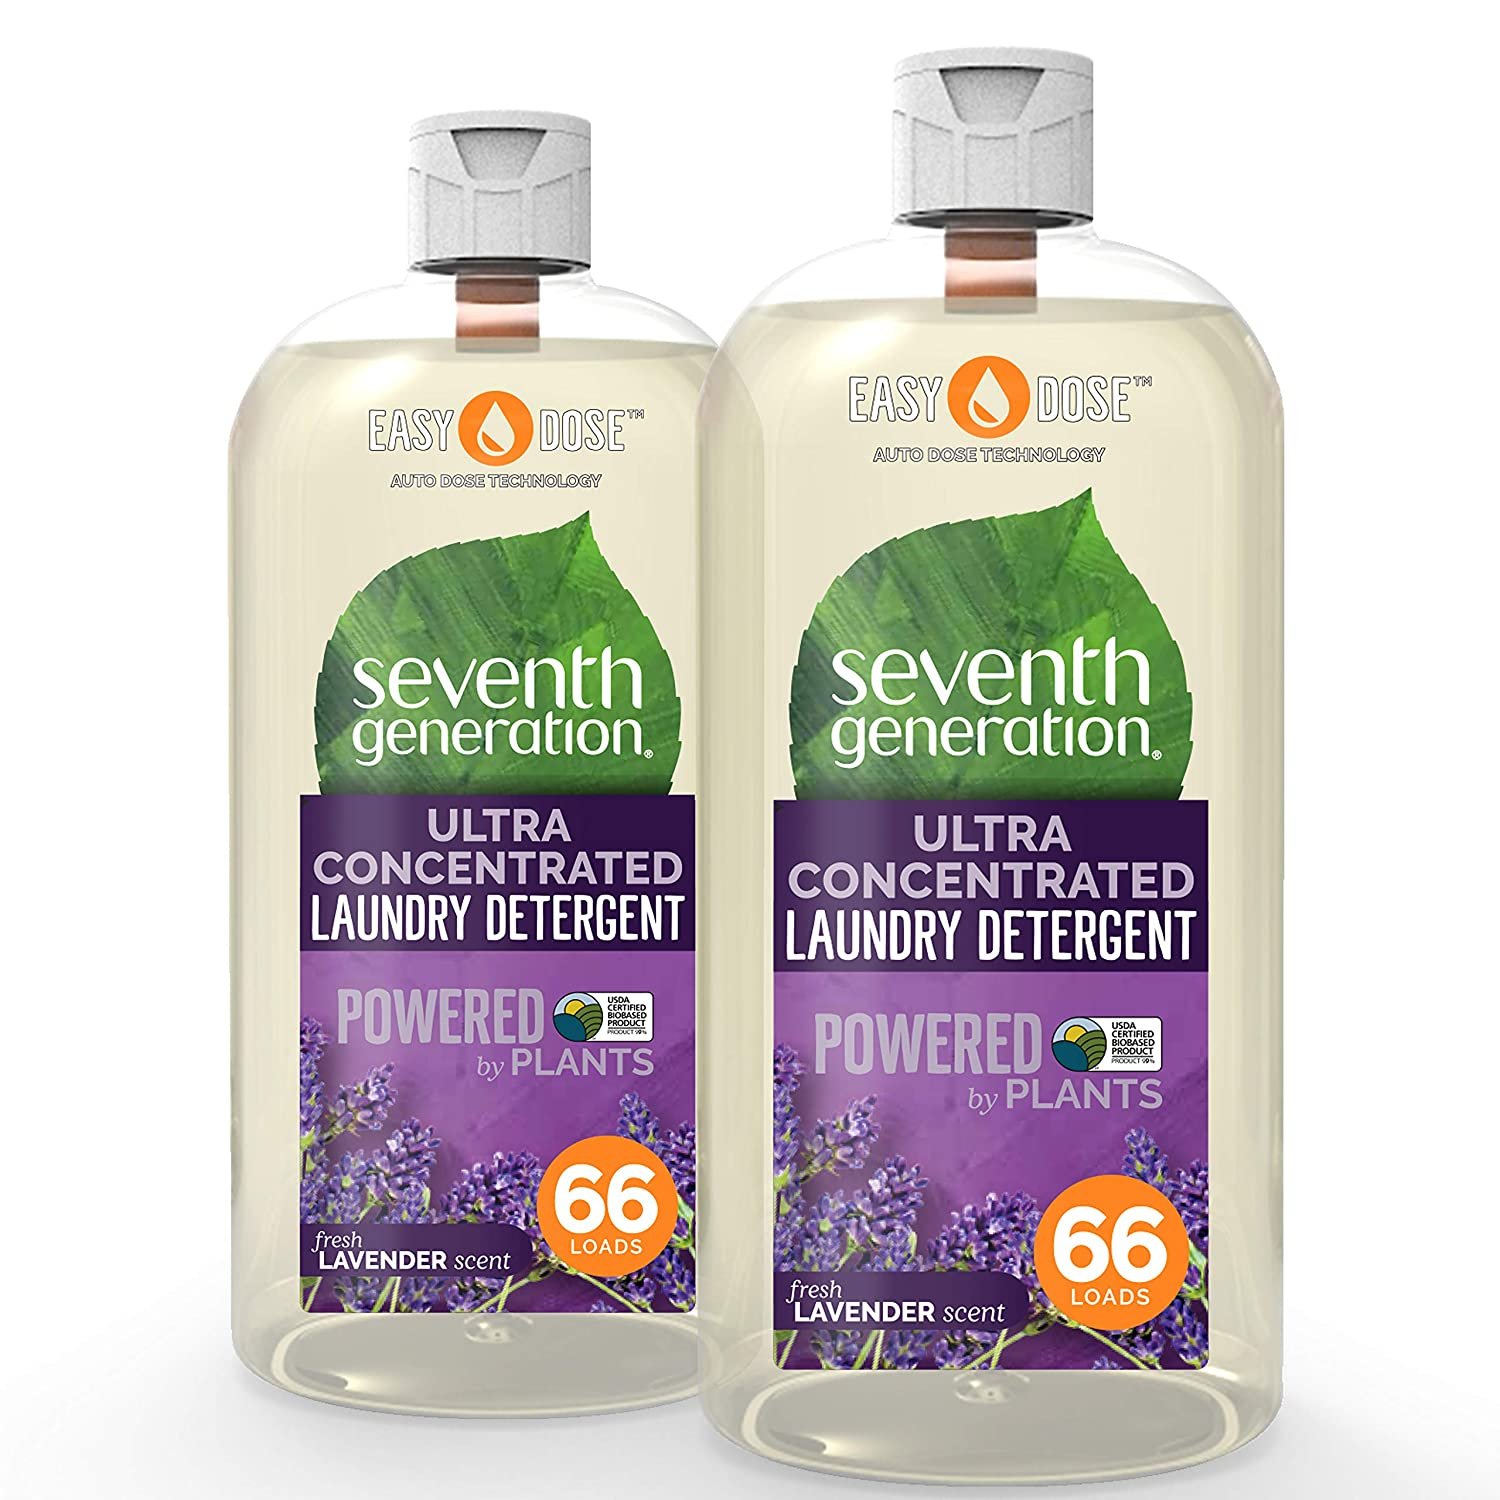 Seventh Generation Laundry Detergent, Ultra Concentrated EasyDose, Fresh Lavender, 23 Ounce, 2 Pack (132 Loads)